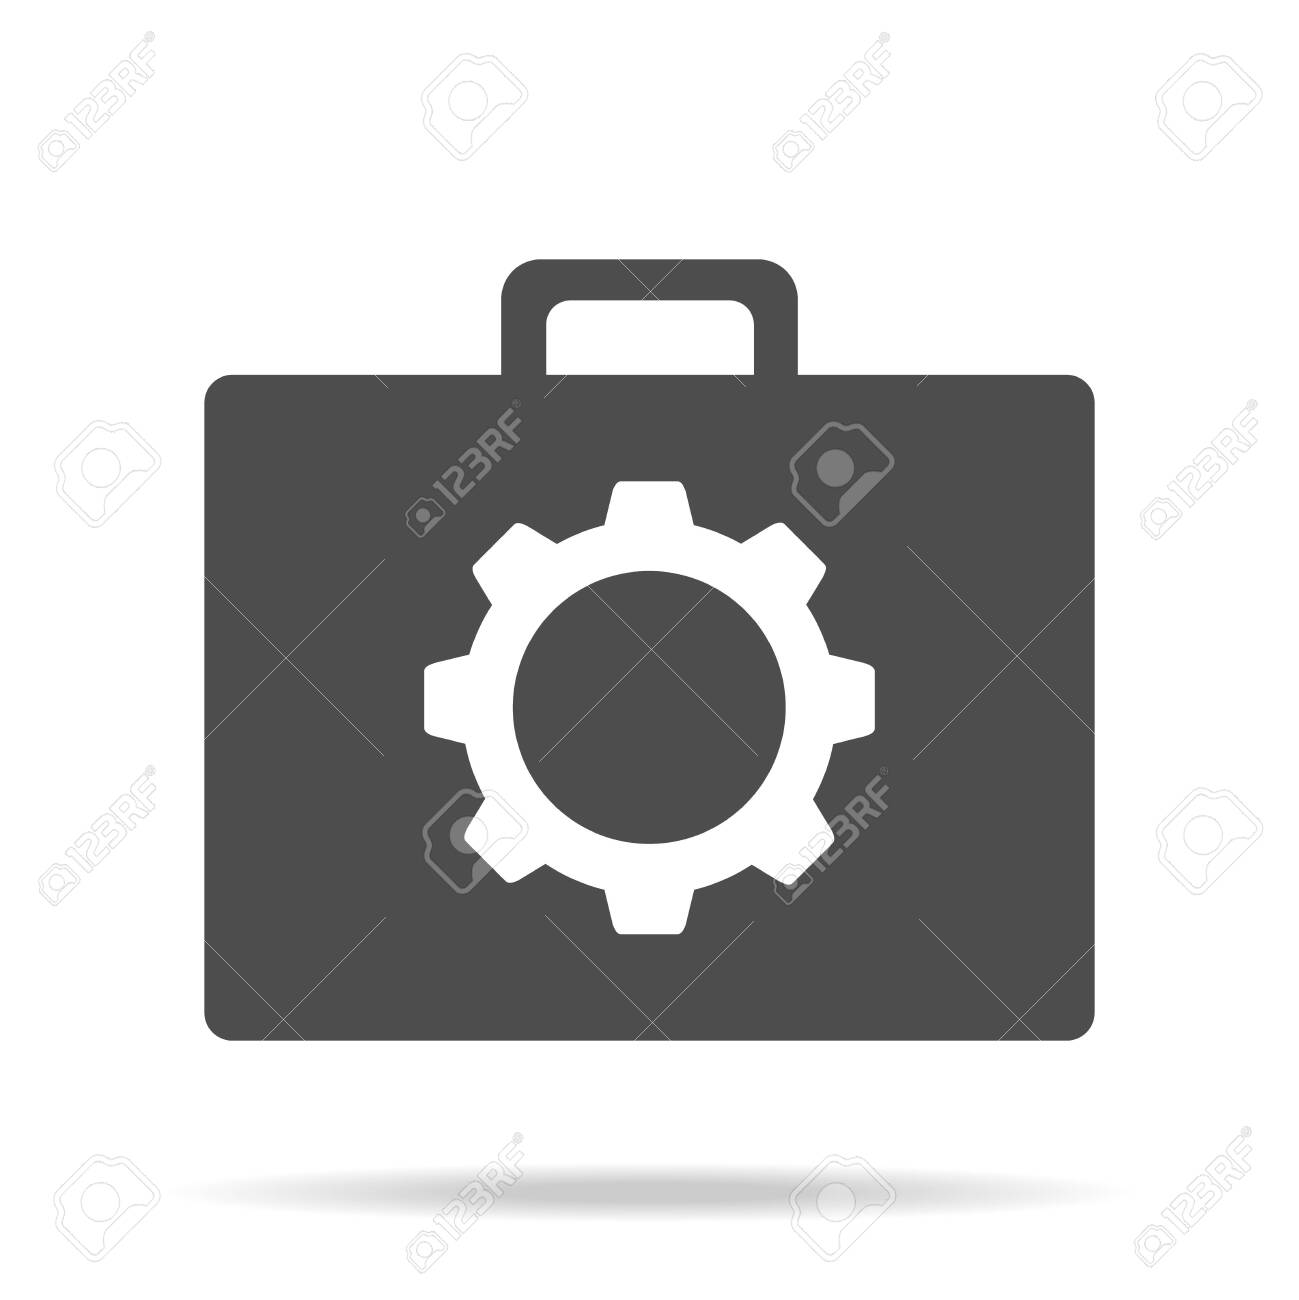 Suitcase of tools. Tools suitcase icon isolated on white background. Vector illustration. Vector. - 151138499